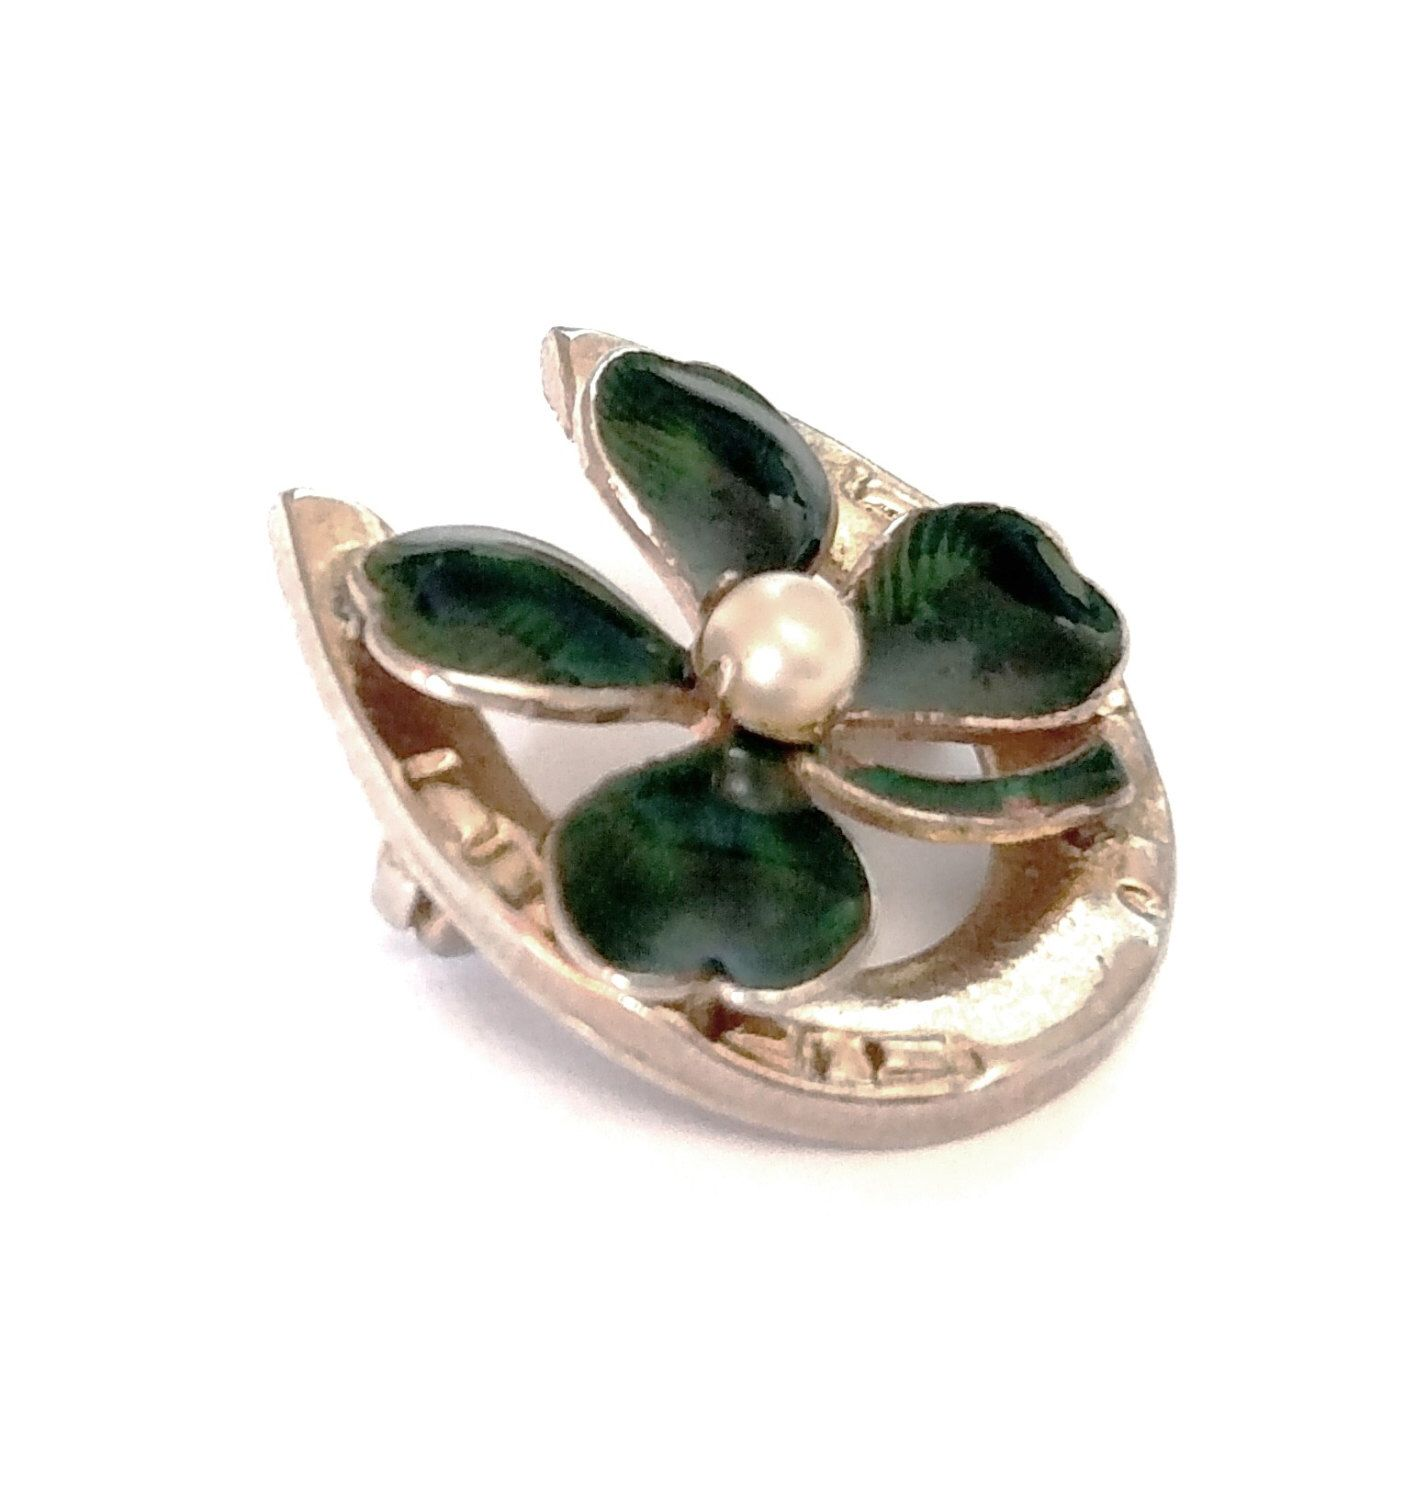 Green lucky shamrock necklace four leaf clover charm emerald green - Good Luck Four Leaf Clover In Horse Shoe Brooch Pin Green Guilloche Enamel Gold Tone Metal Miniature Pearl Lucky Charm Shamrock Gift Vintage